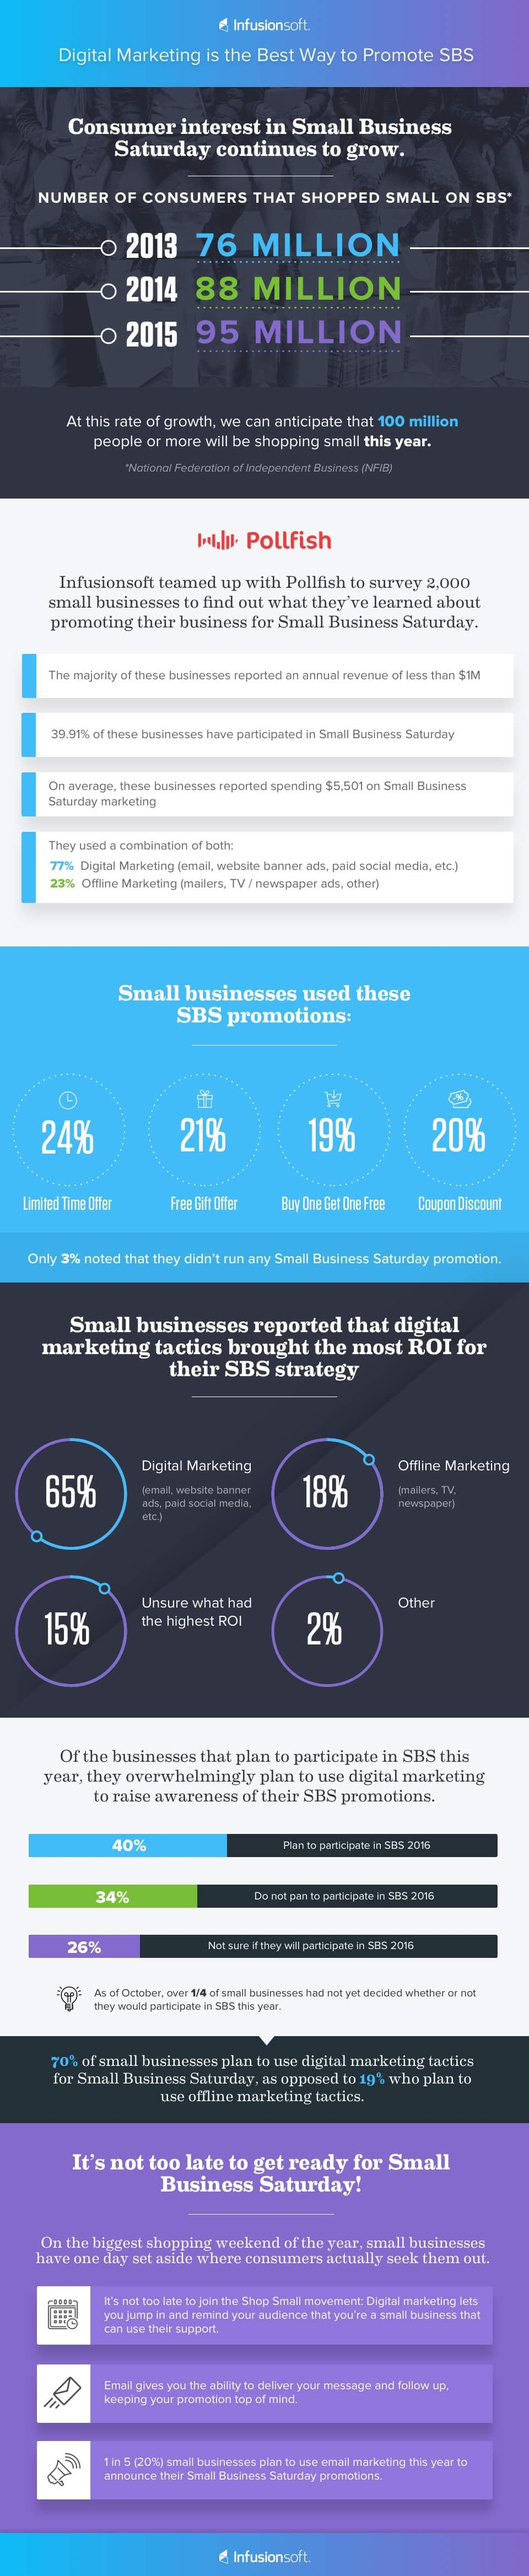 Infusionsoft Infographic